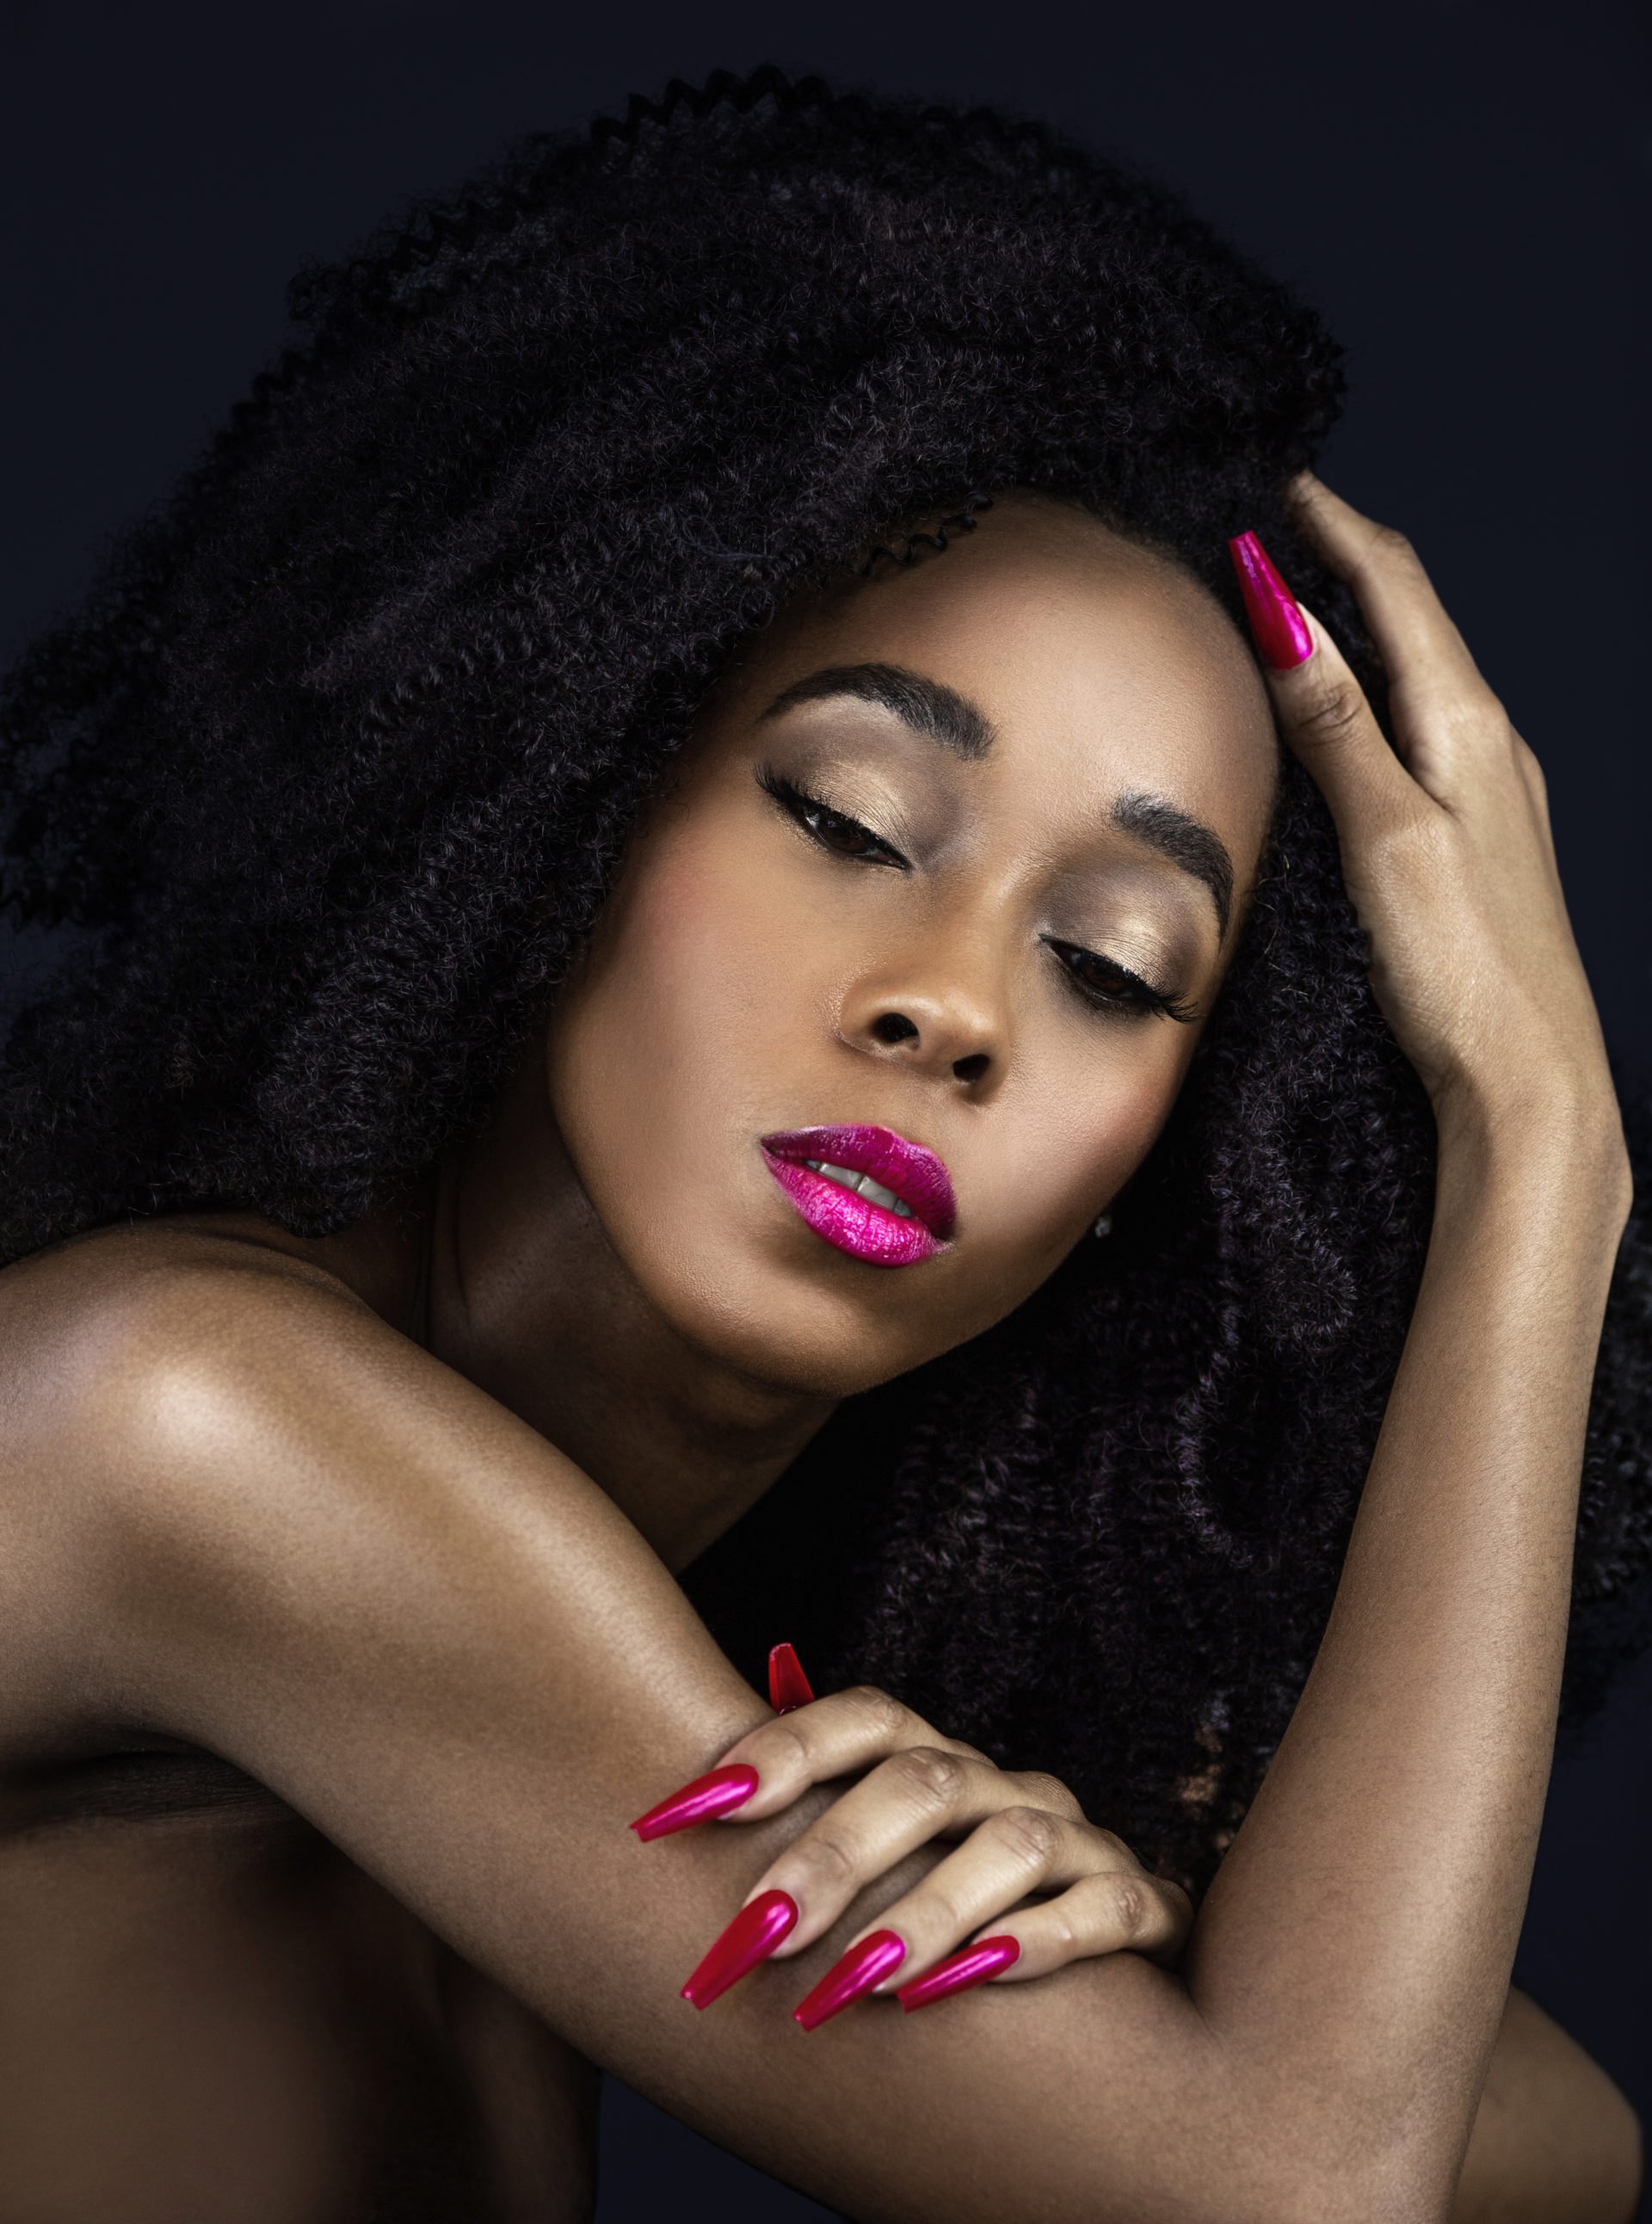 Curly Serene Black Lady with Fuchsia Lipstick & Nails